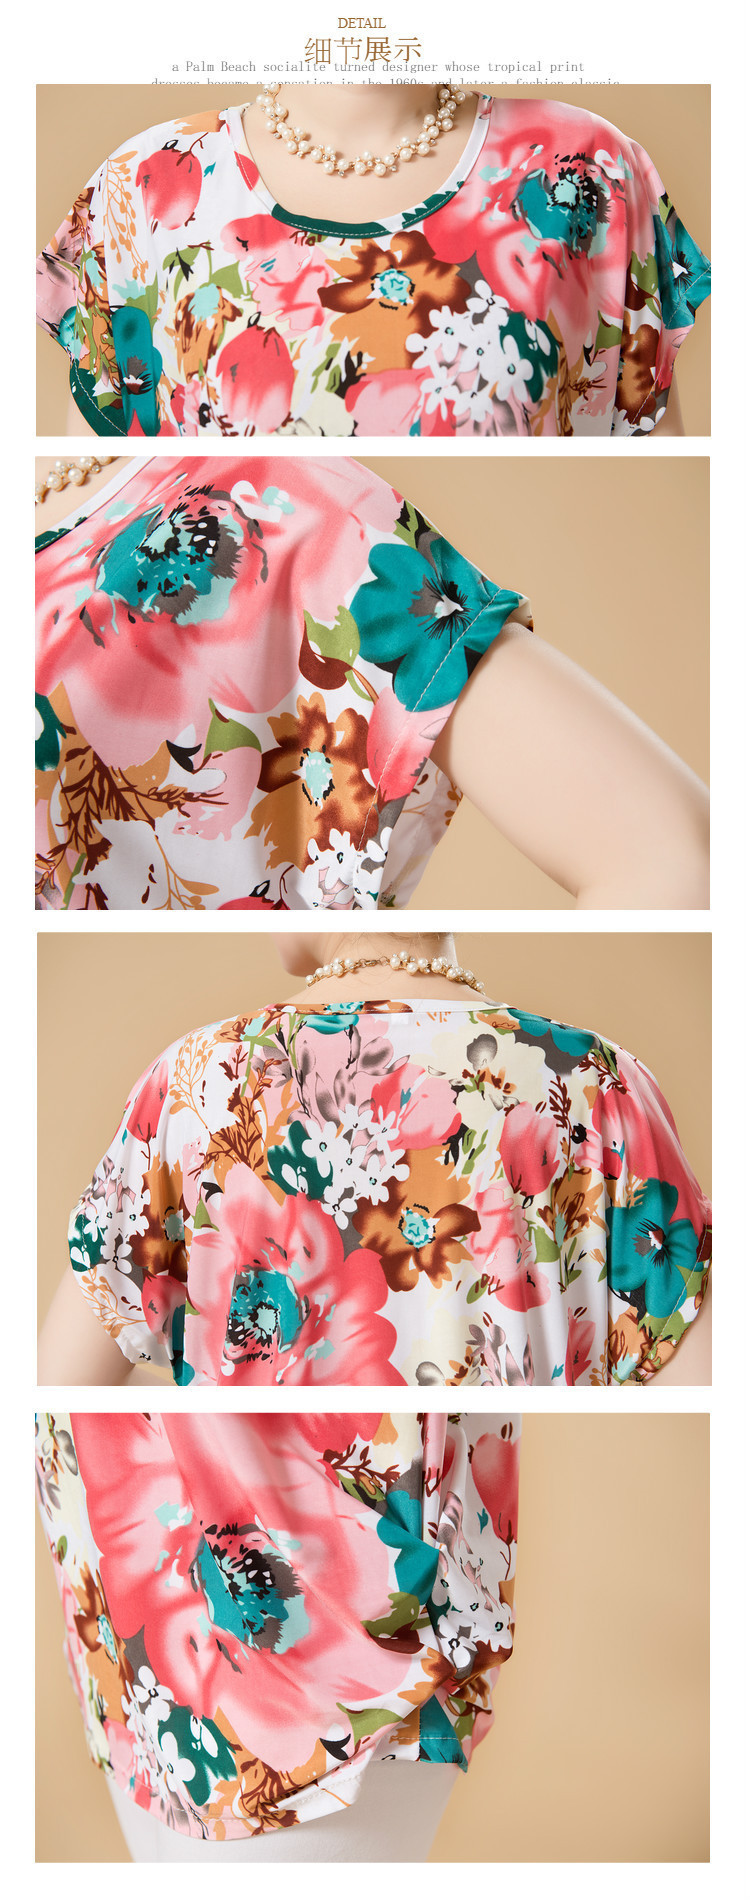 HTB1JMcddol7MKJjSZFDq6yOEpXaF XL 5XL Women Summer Style Casual Blouses Flor Clothing Plus Size Short Sleeve Floral Blusas Shirt Women's Tops Russia 56